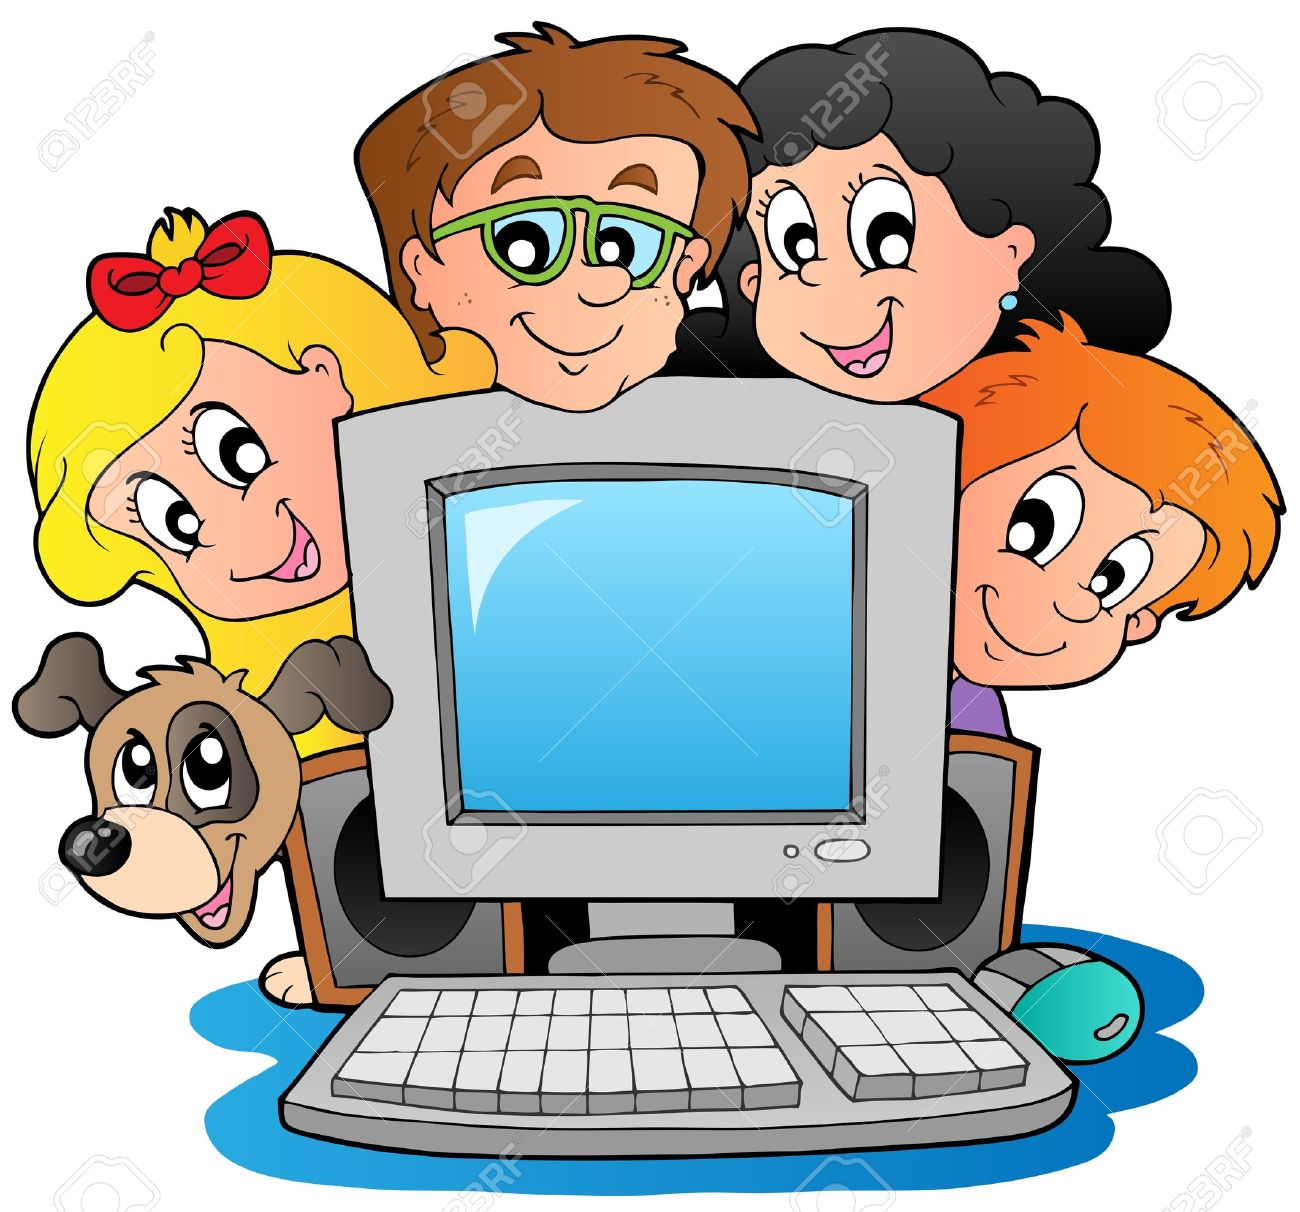 Computer with cartoon kids and dog Stock Vector - 10354188